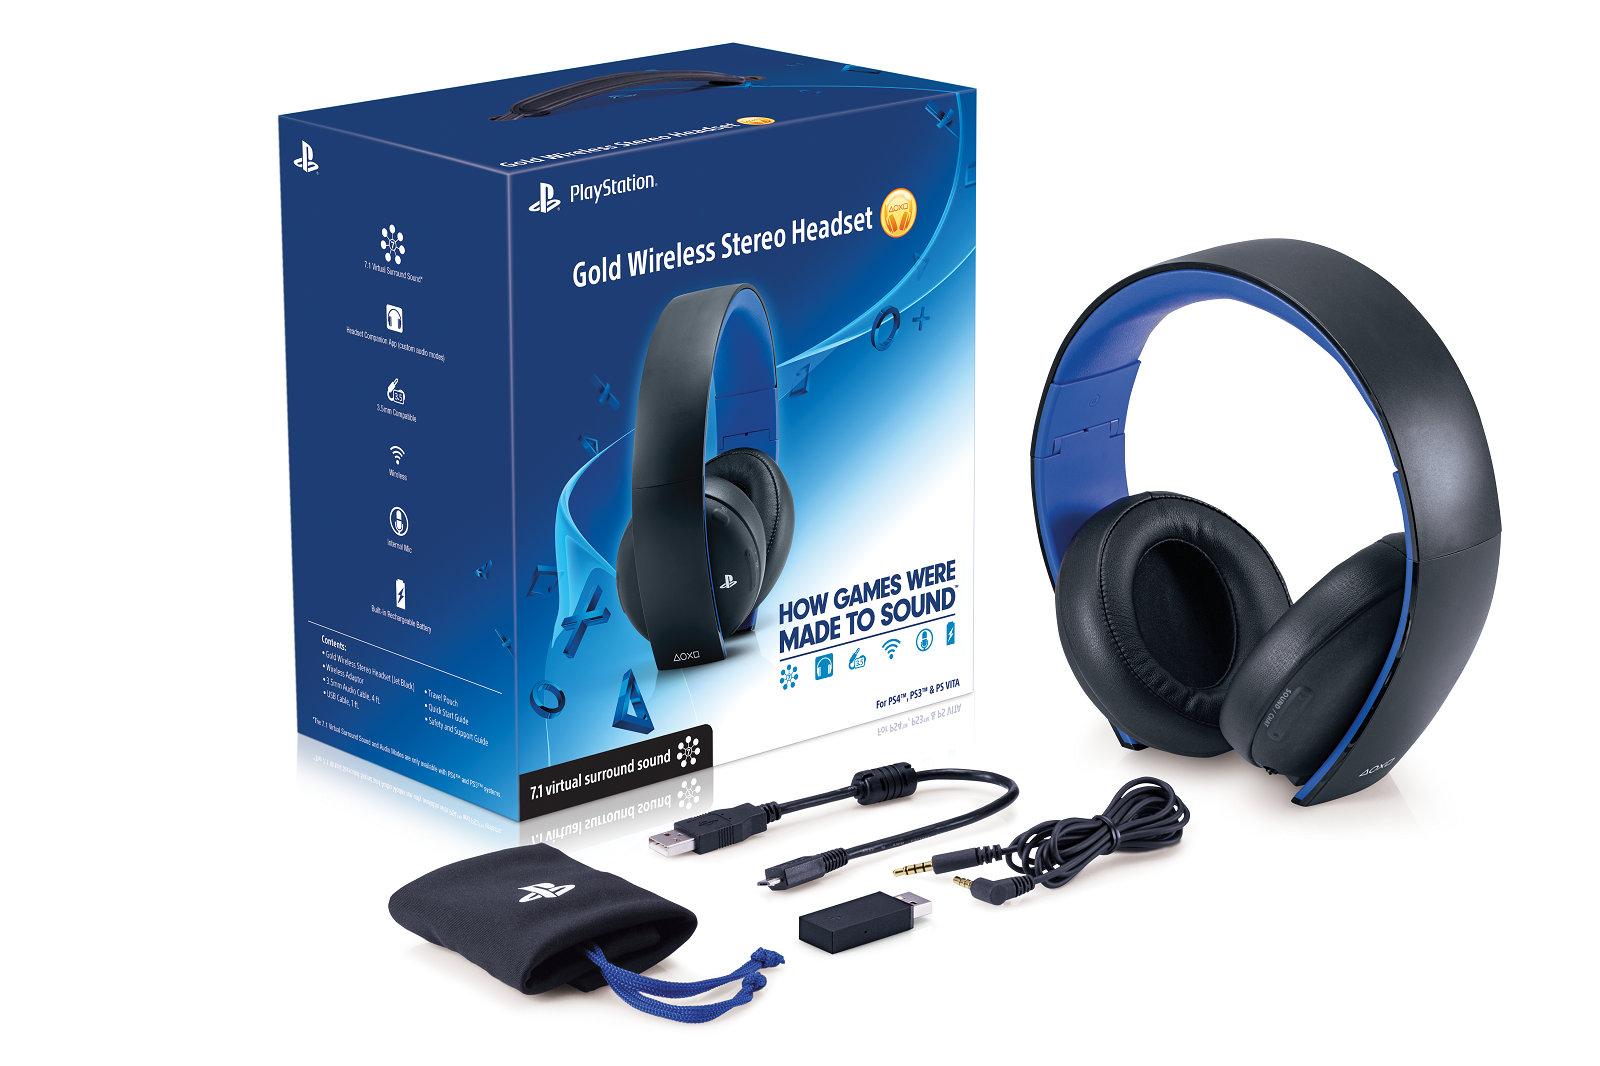 gaming headsets for ps3 wiring diagrams wiring diagram. Black Bedroom Furniture Sets. Home Design Ideas